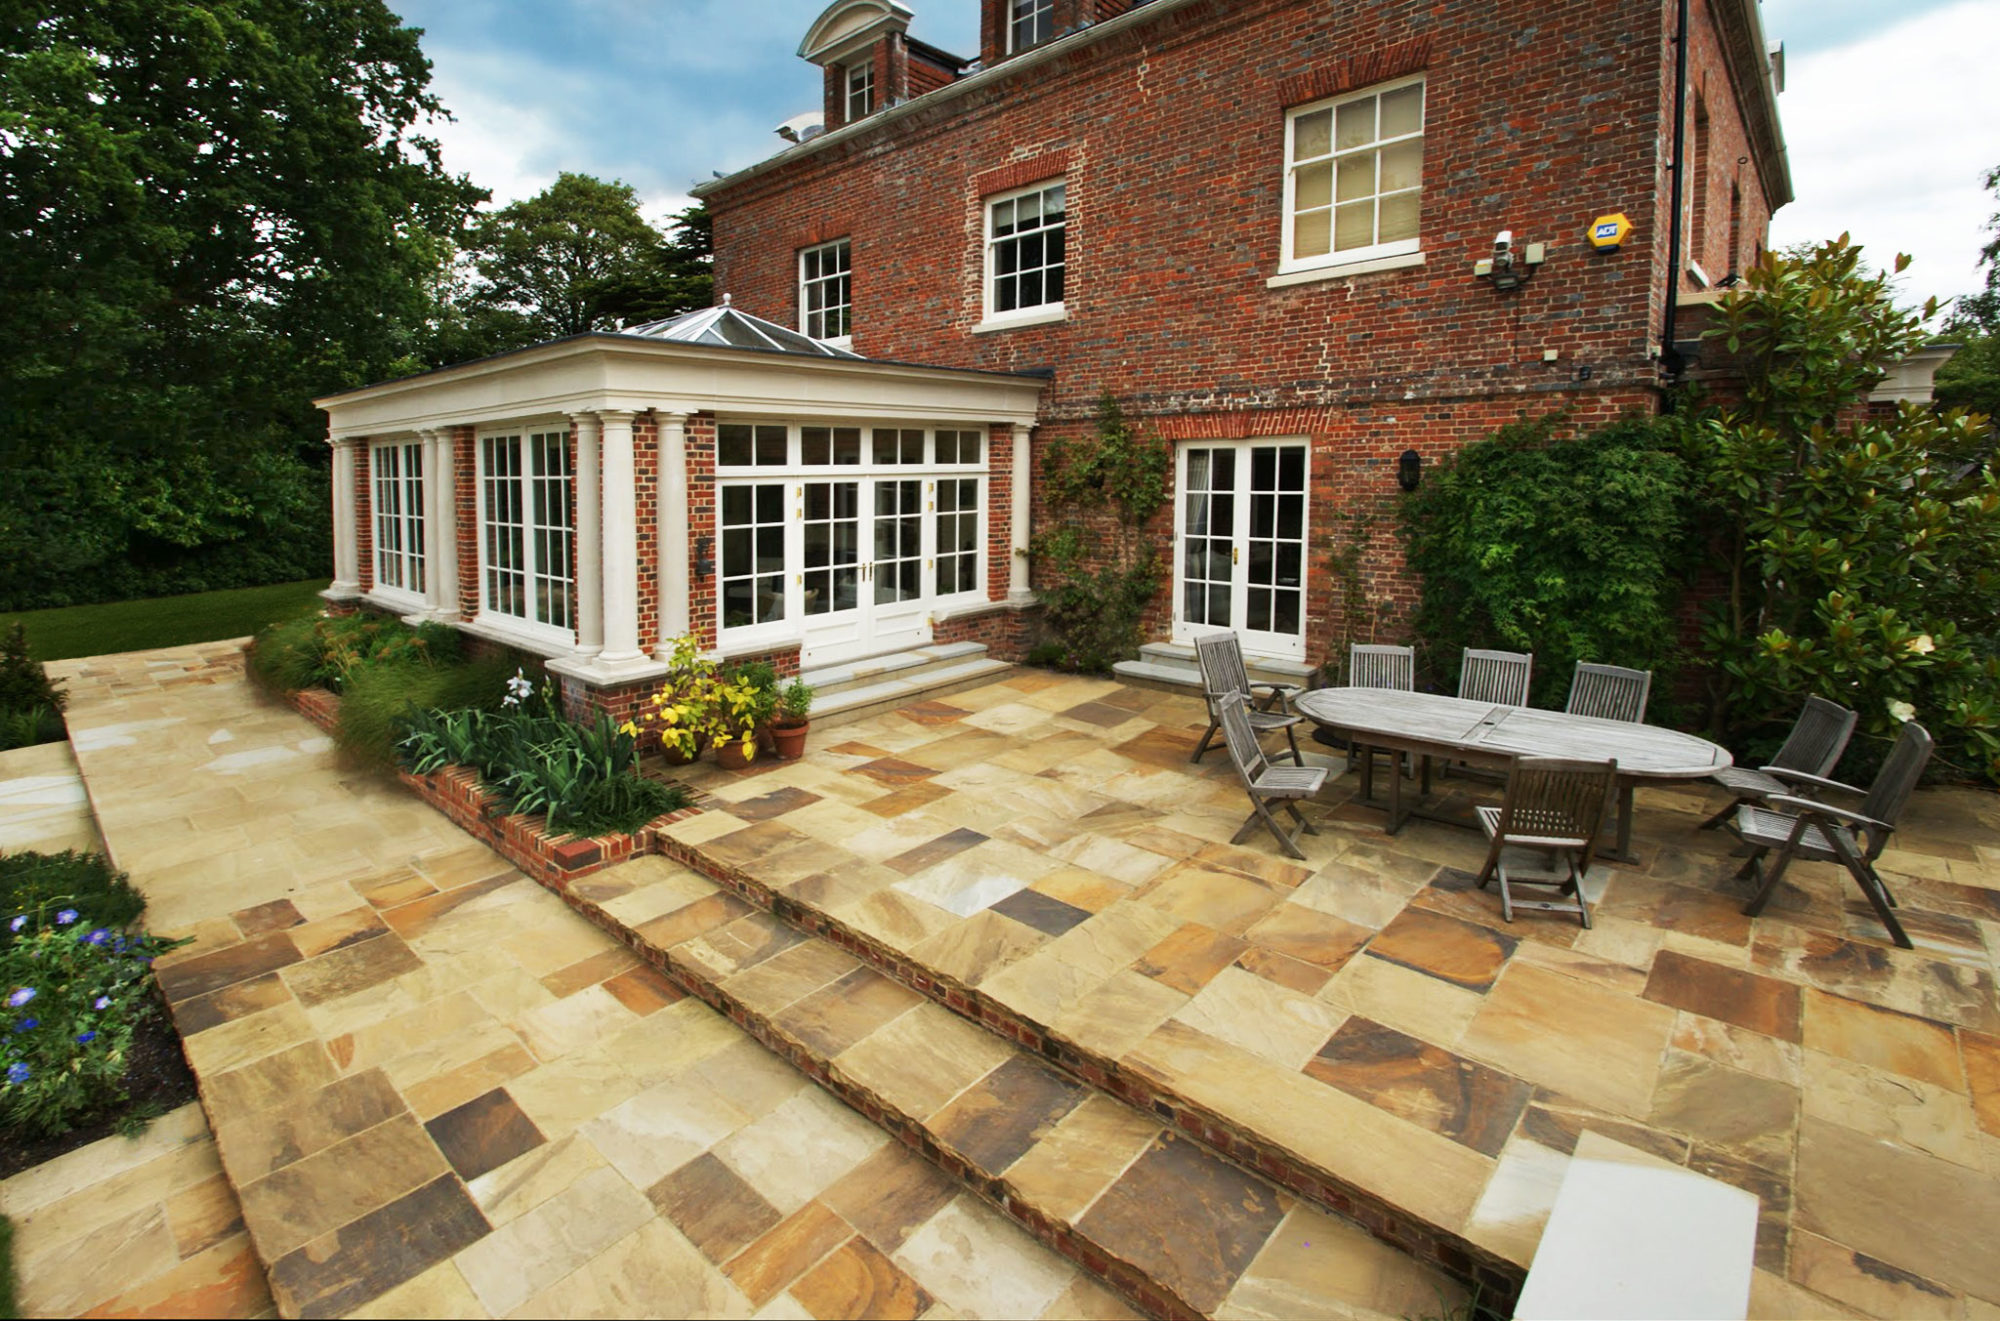 Stone UK – A Natural Stone Supplier In The North Of England